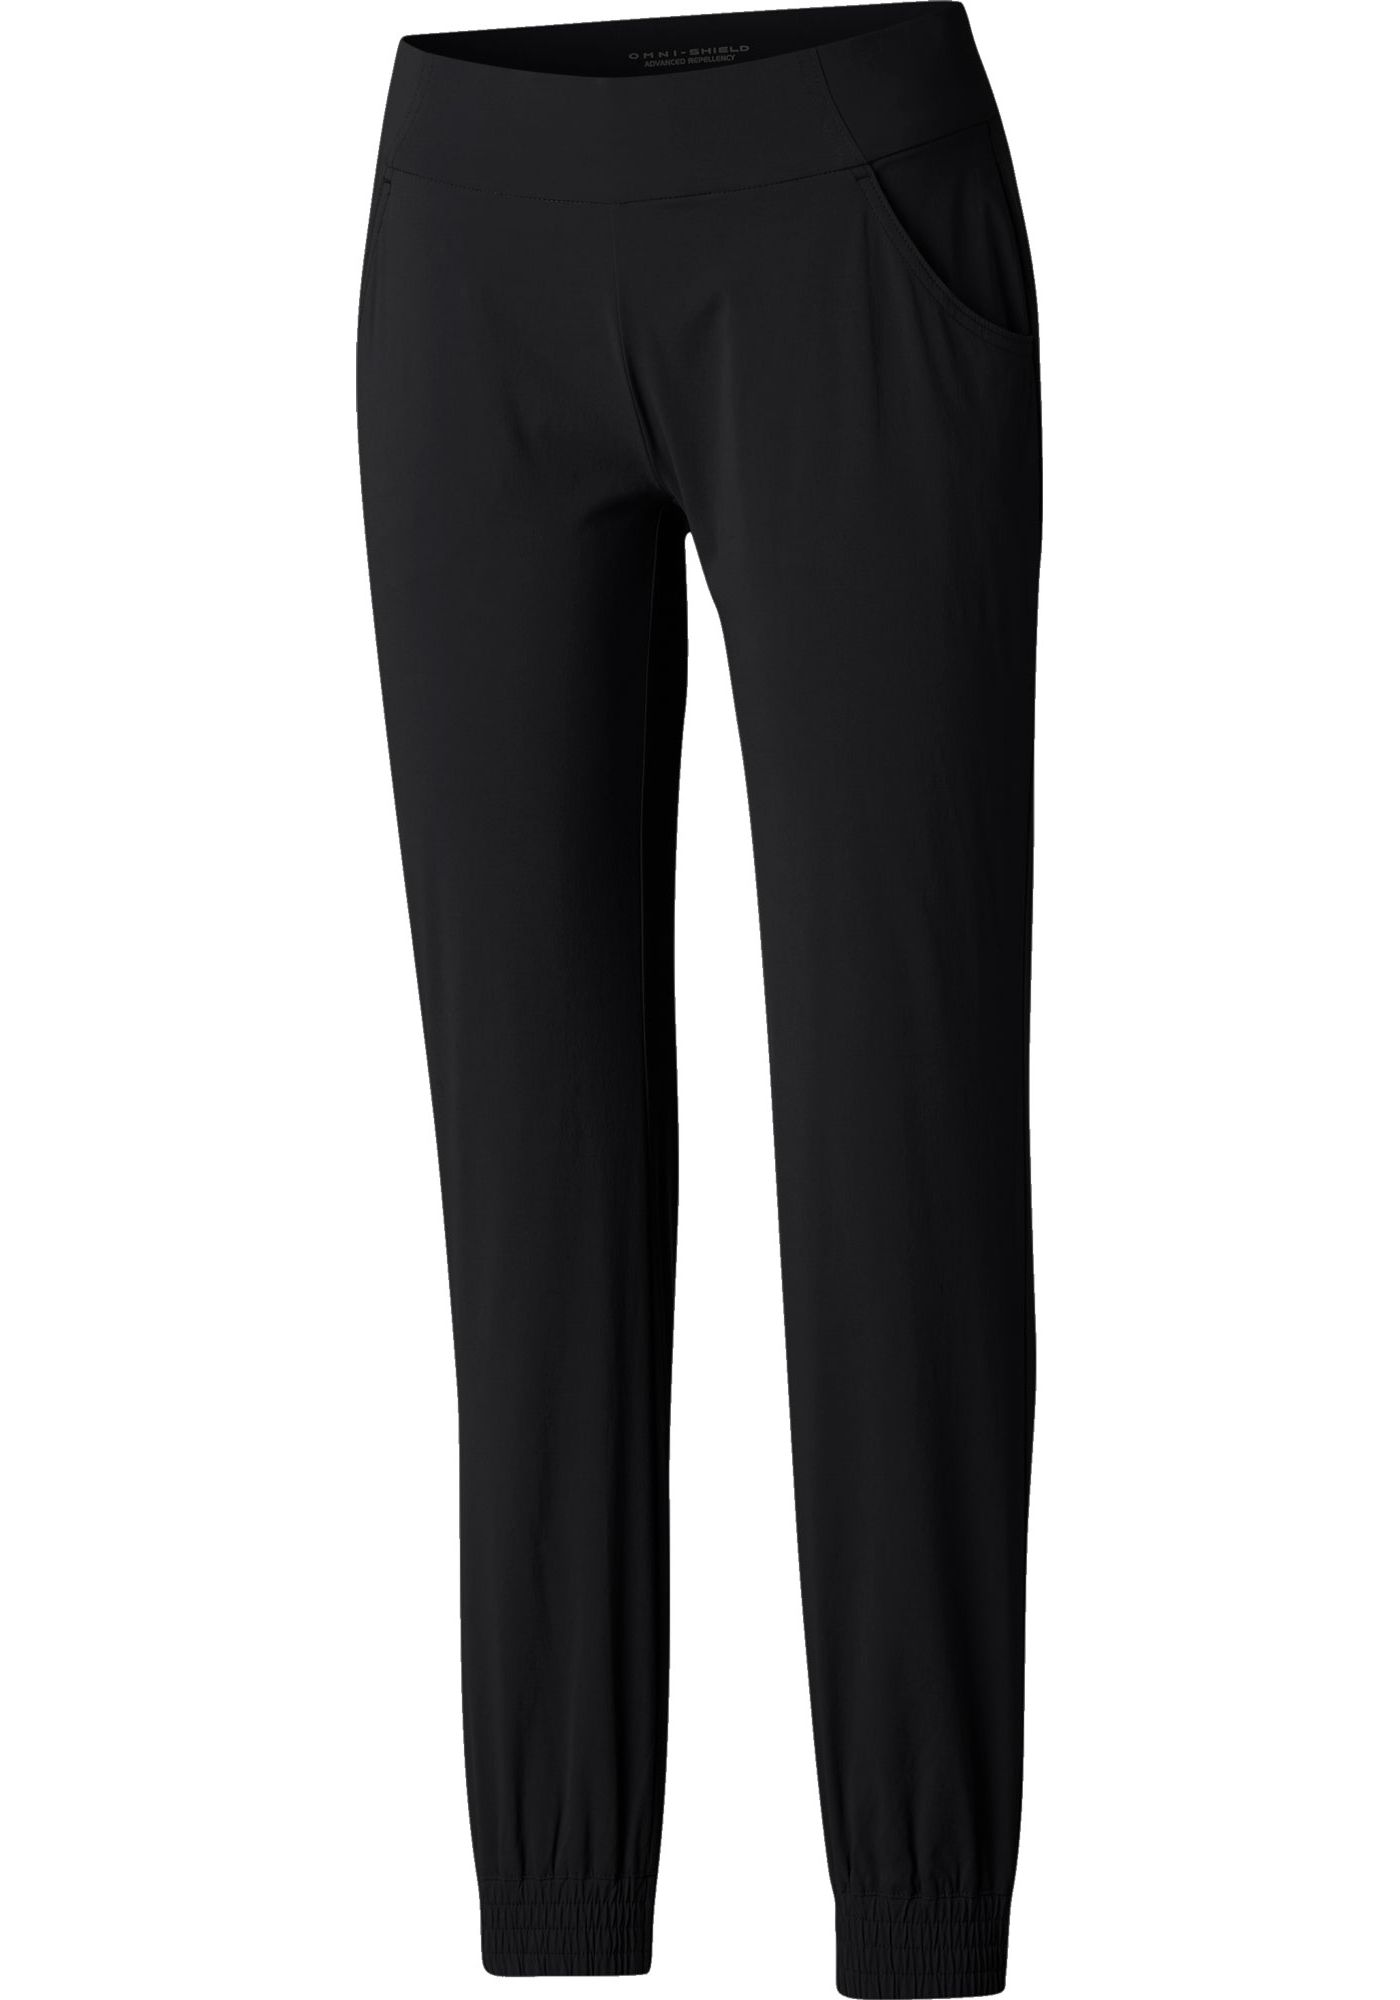 Columbia Women's Anytime Casual Jogger Pants